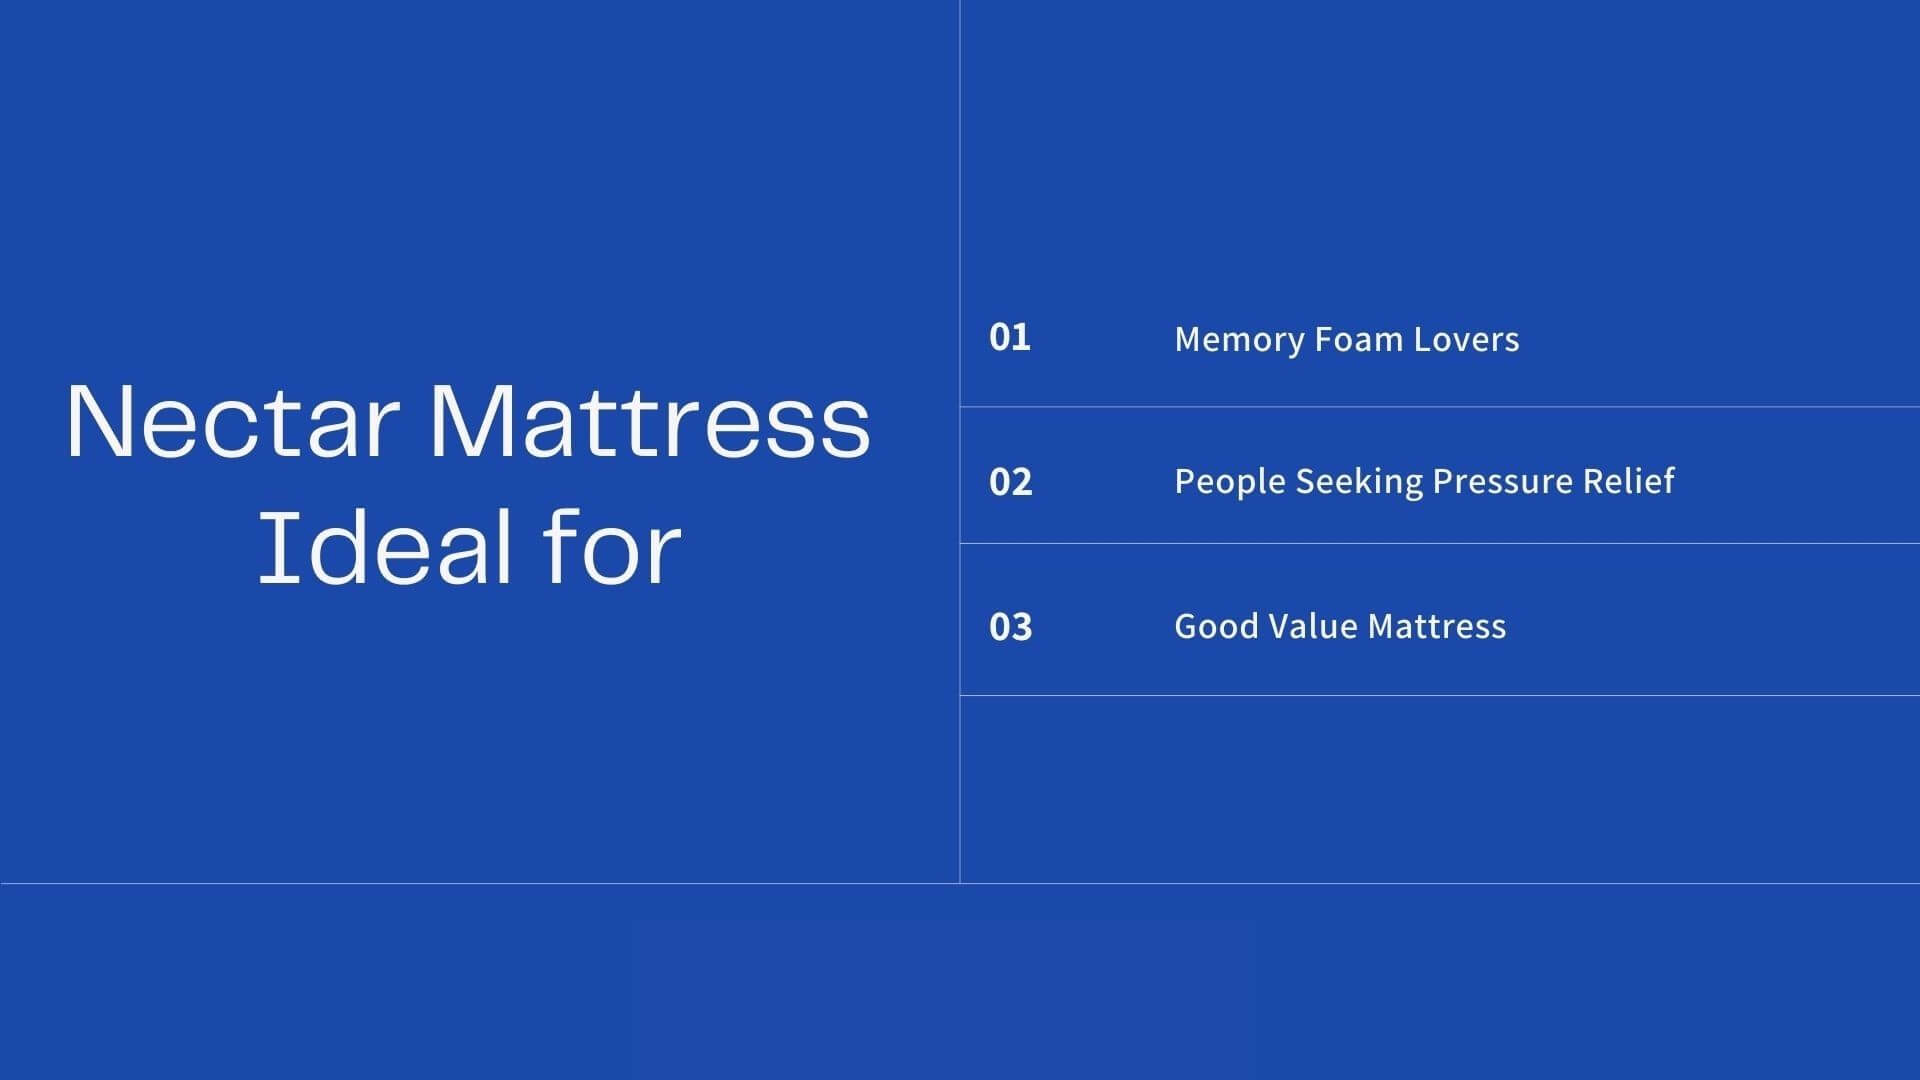 Is nectar sleep mattress for you